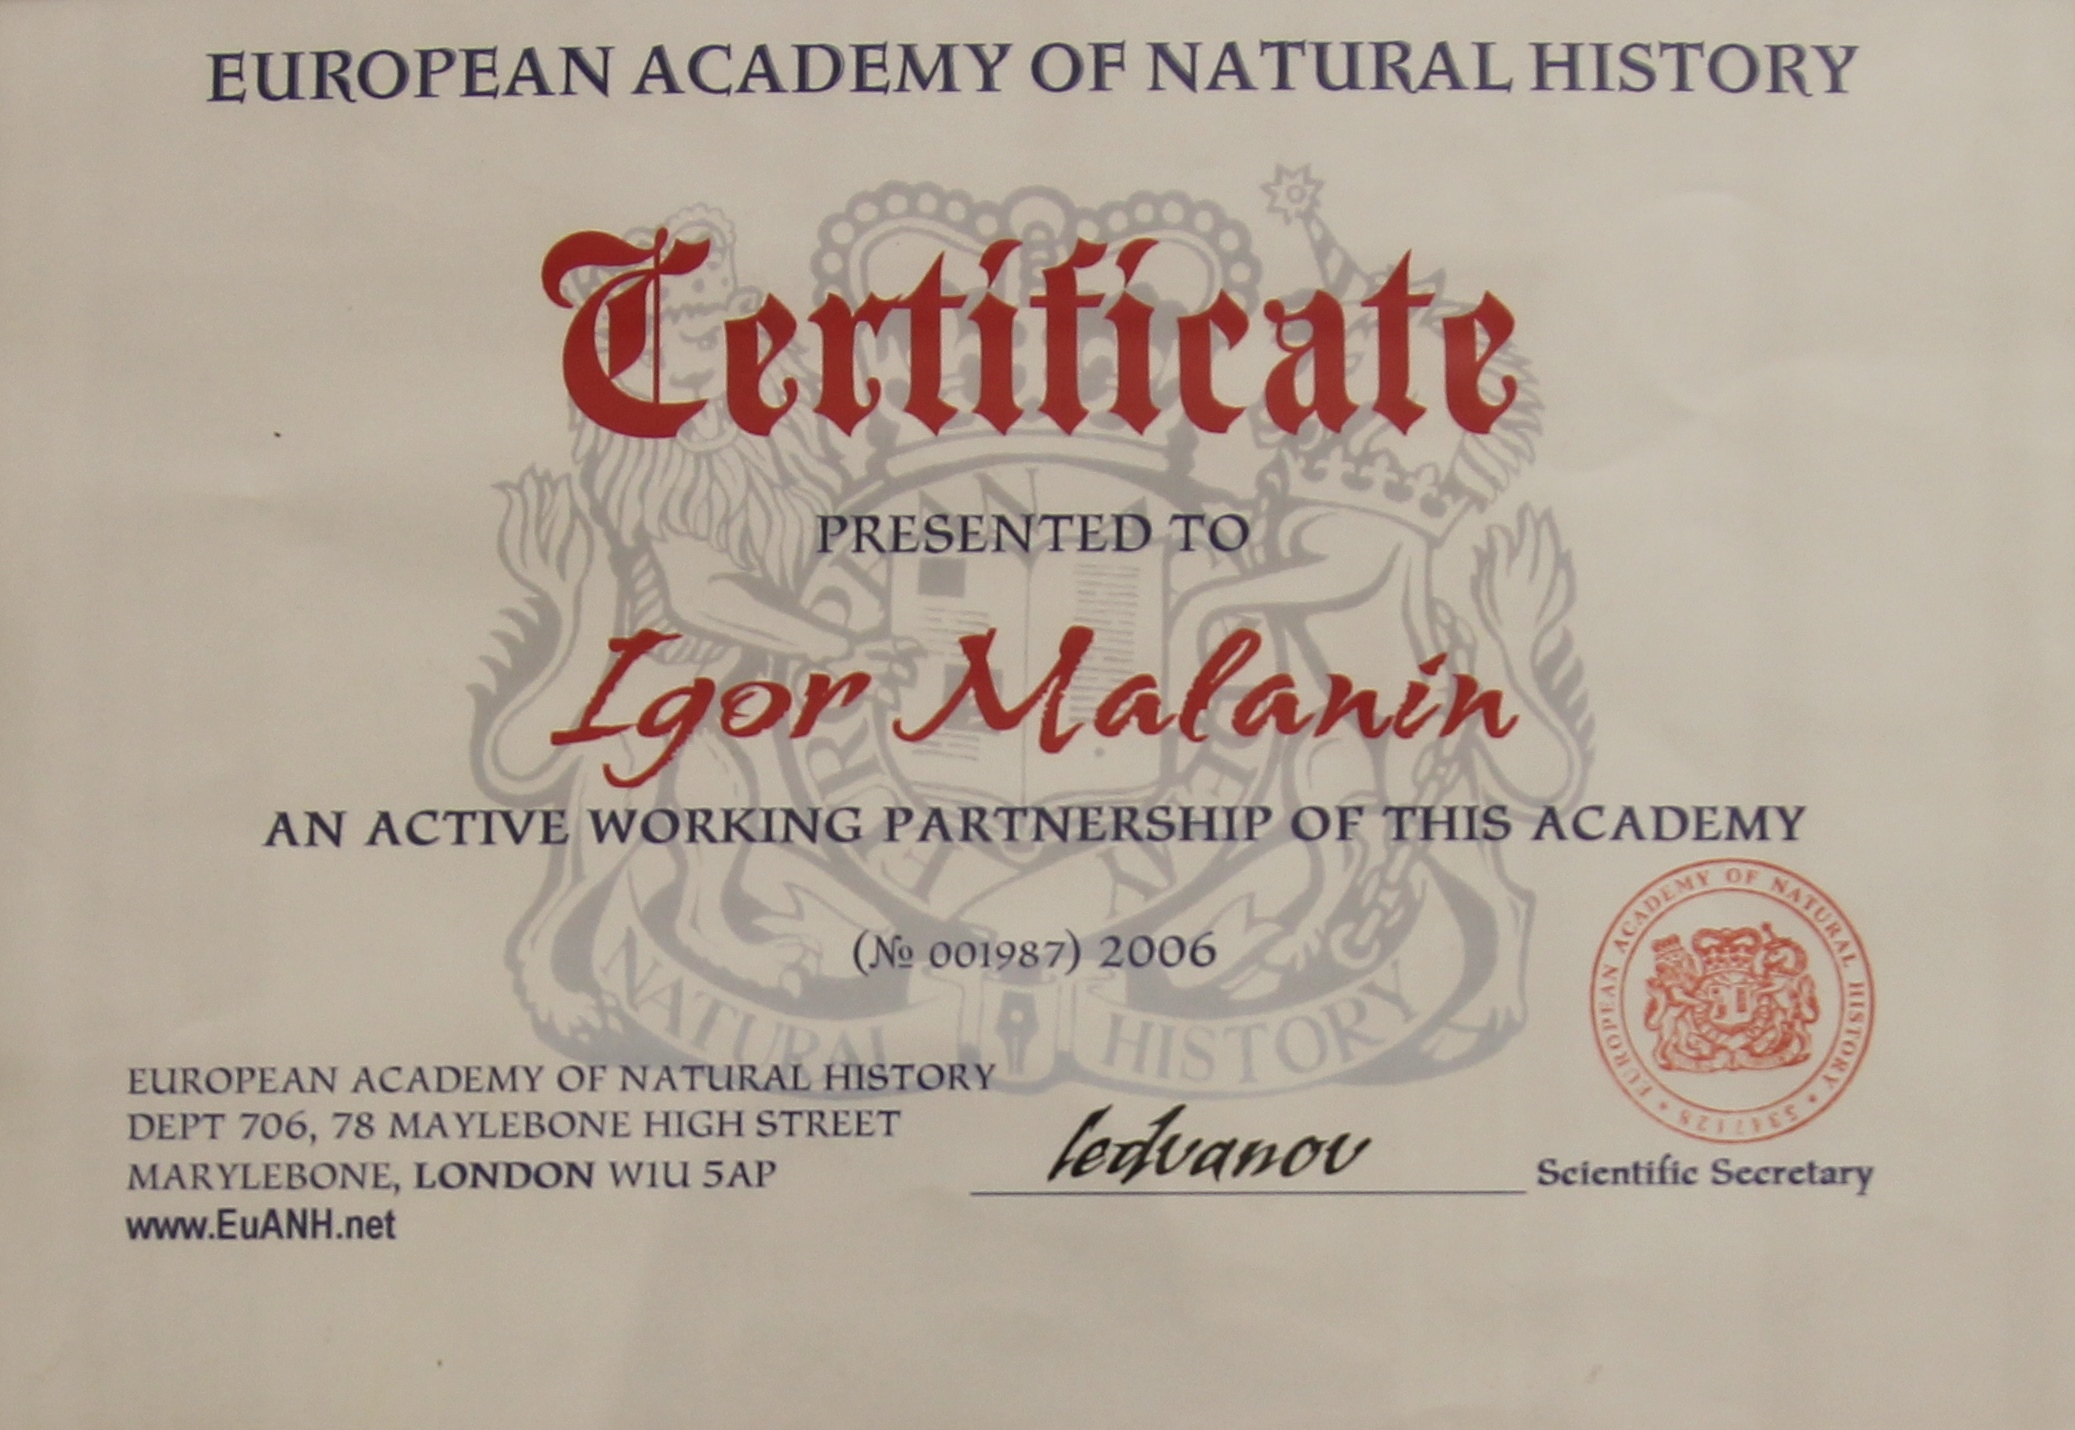 Active working partnership of the European Academy of Natural History